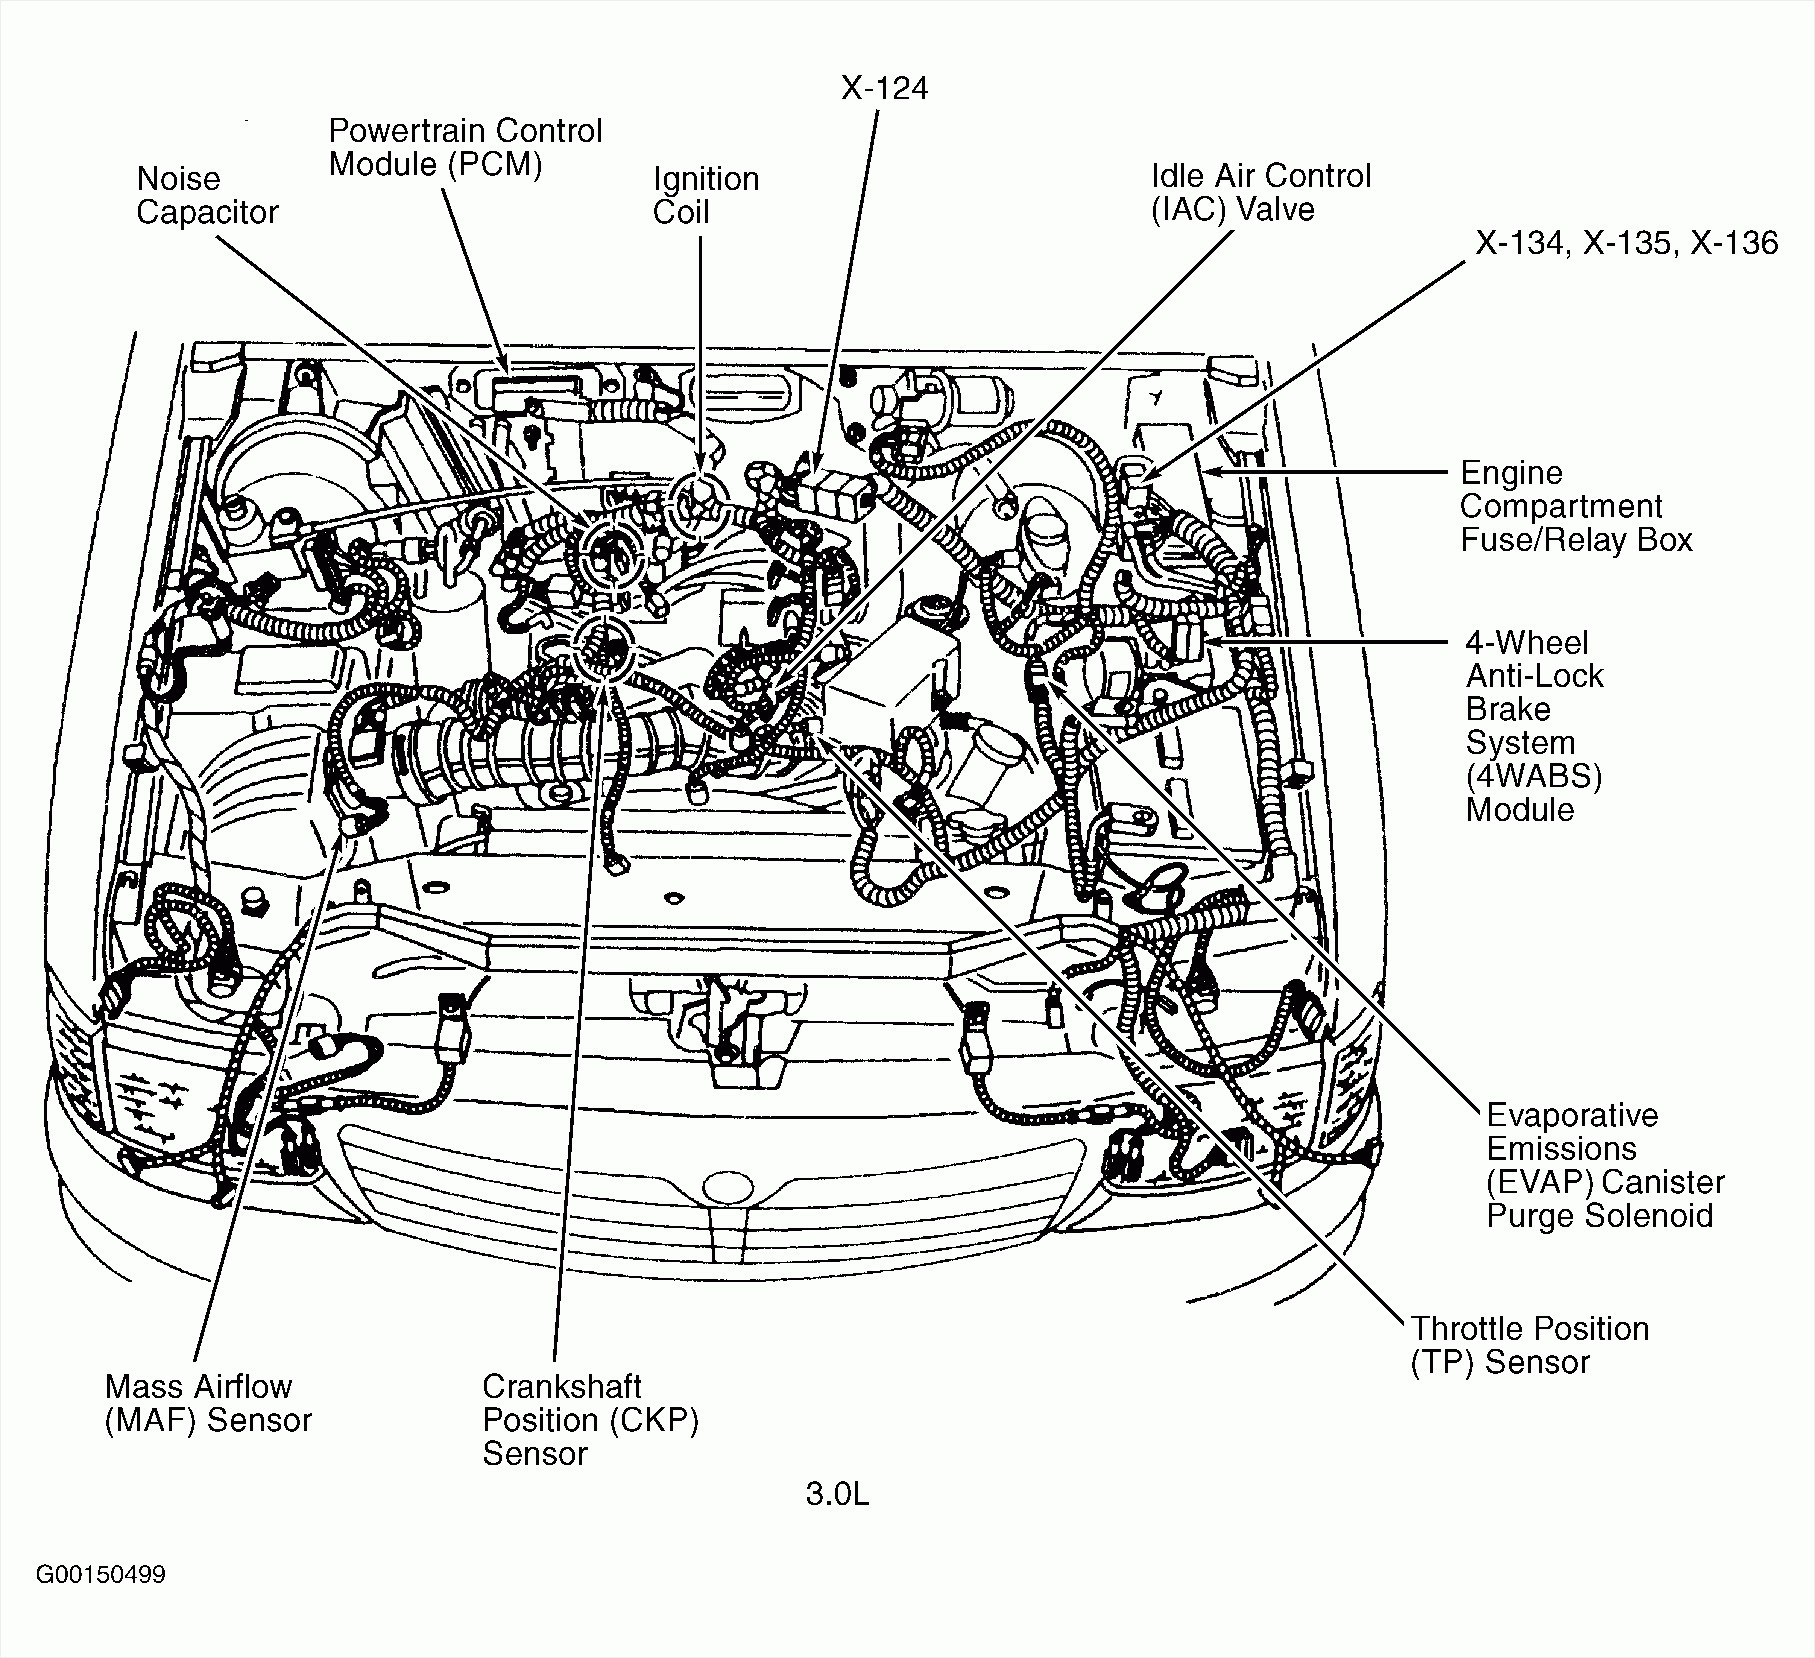 2001 mazda tribute v6 engine diagram